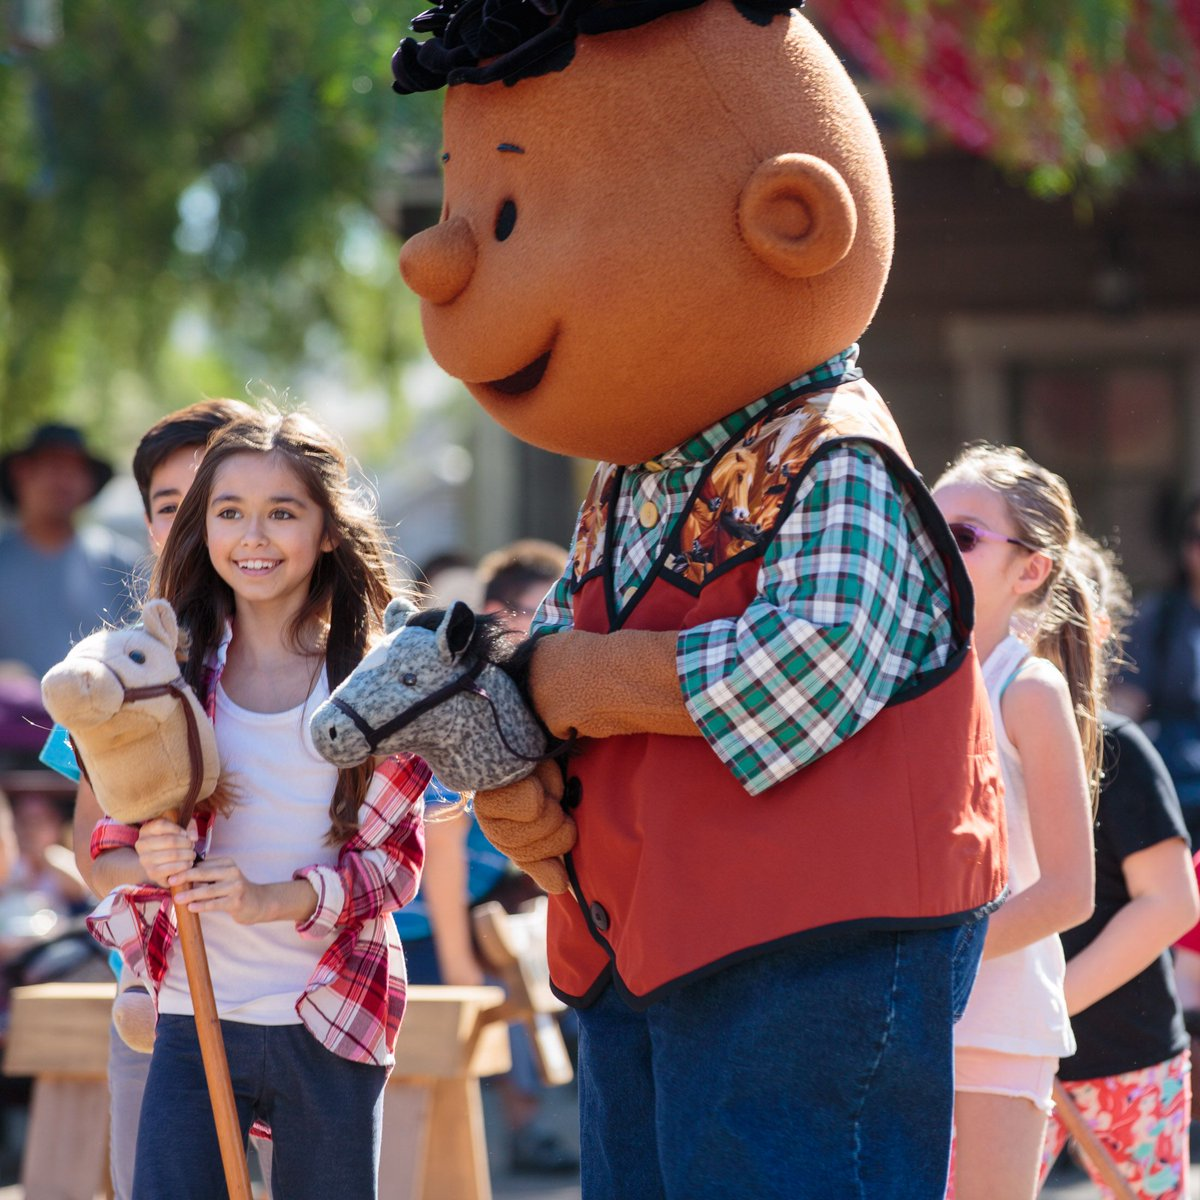 Peanuts Character Franklin Armstrong at Knott's Berry Farm Amusement Park